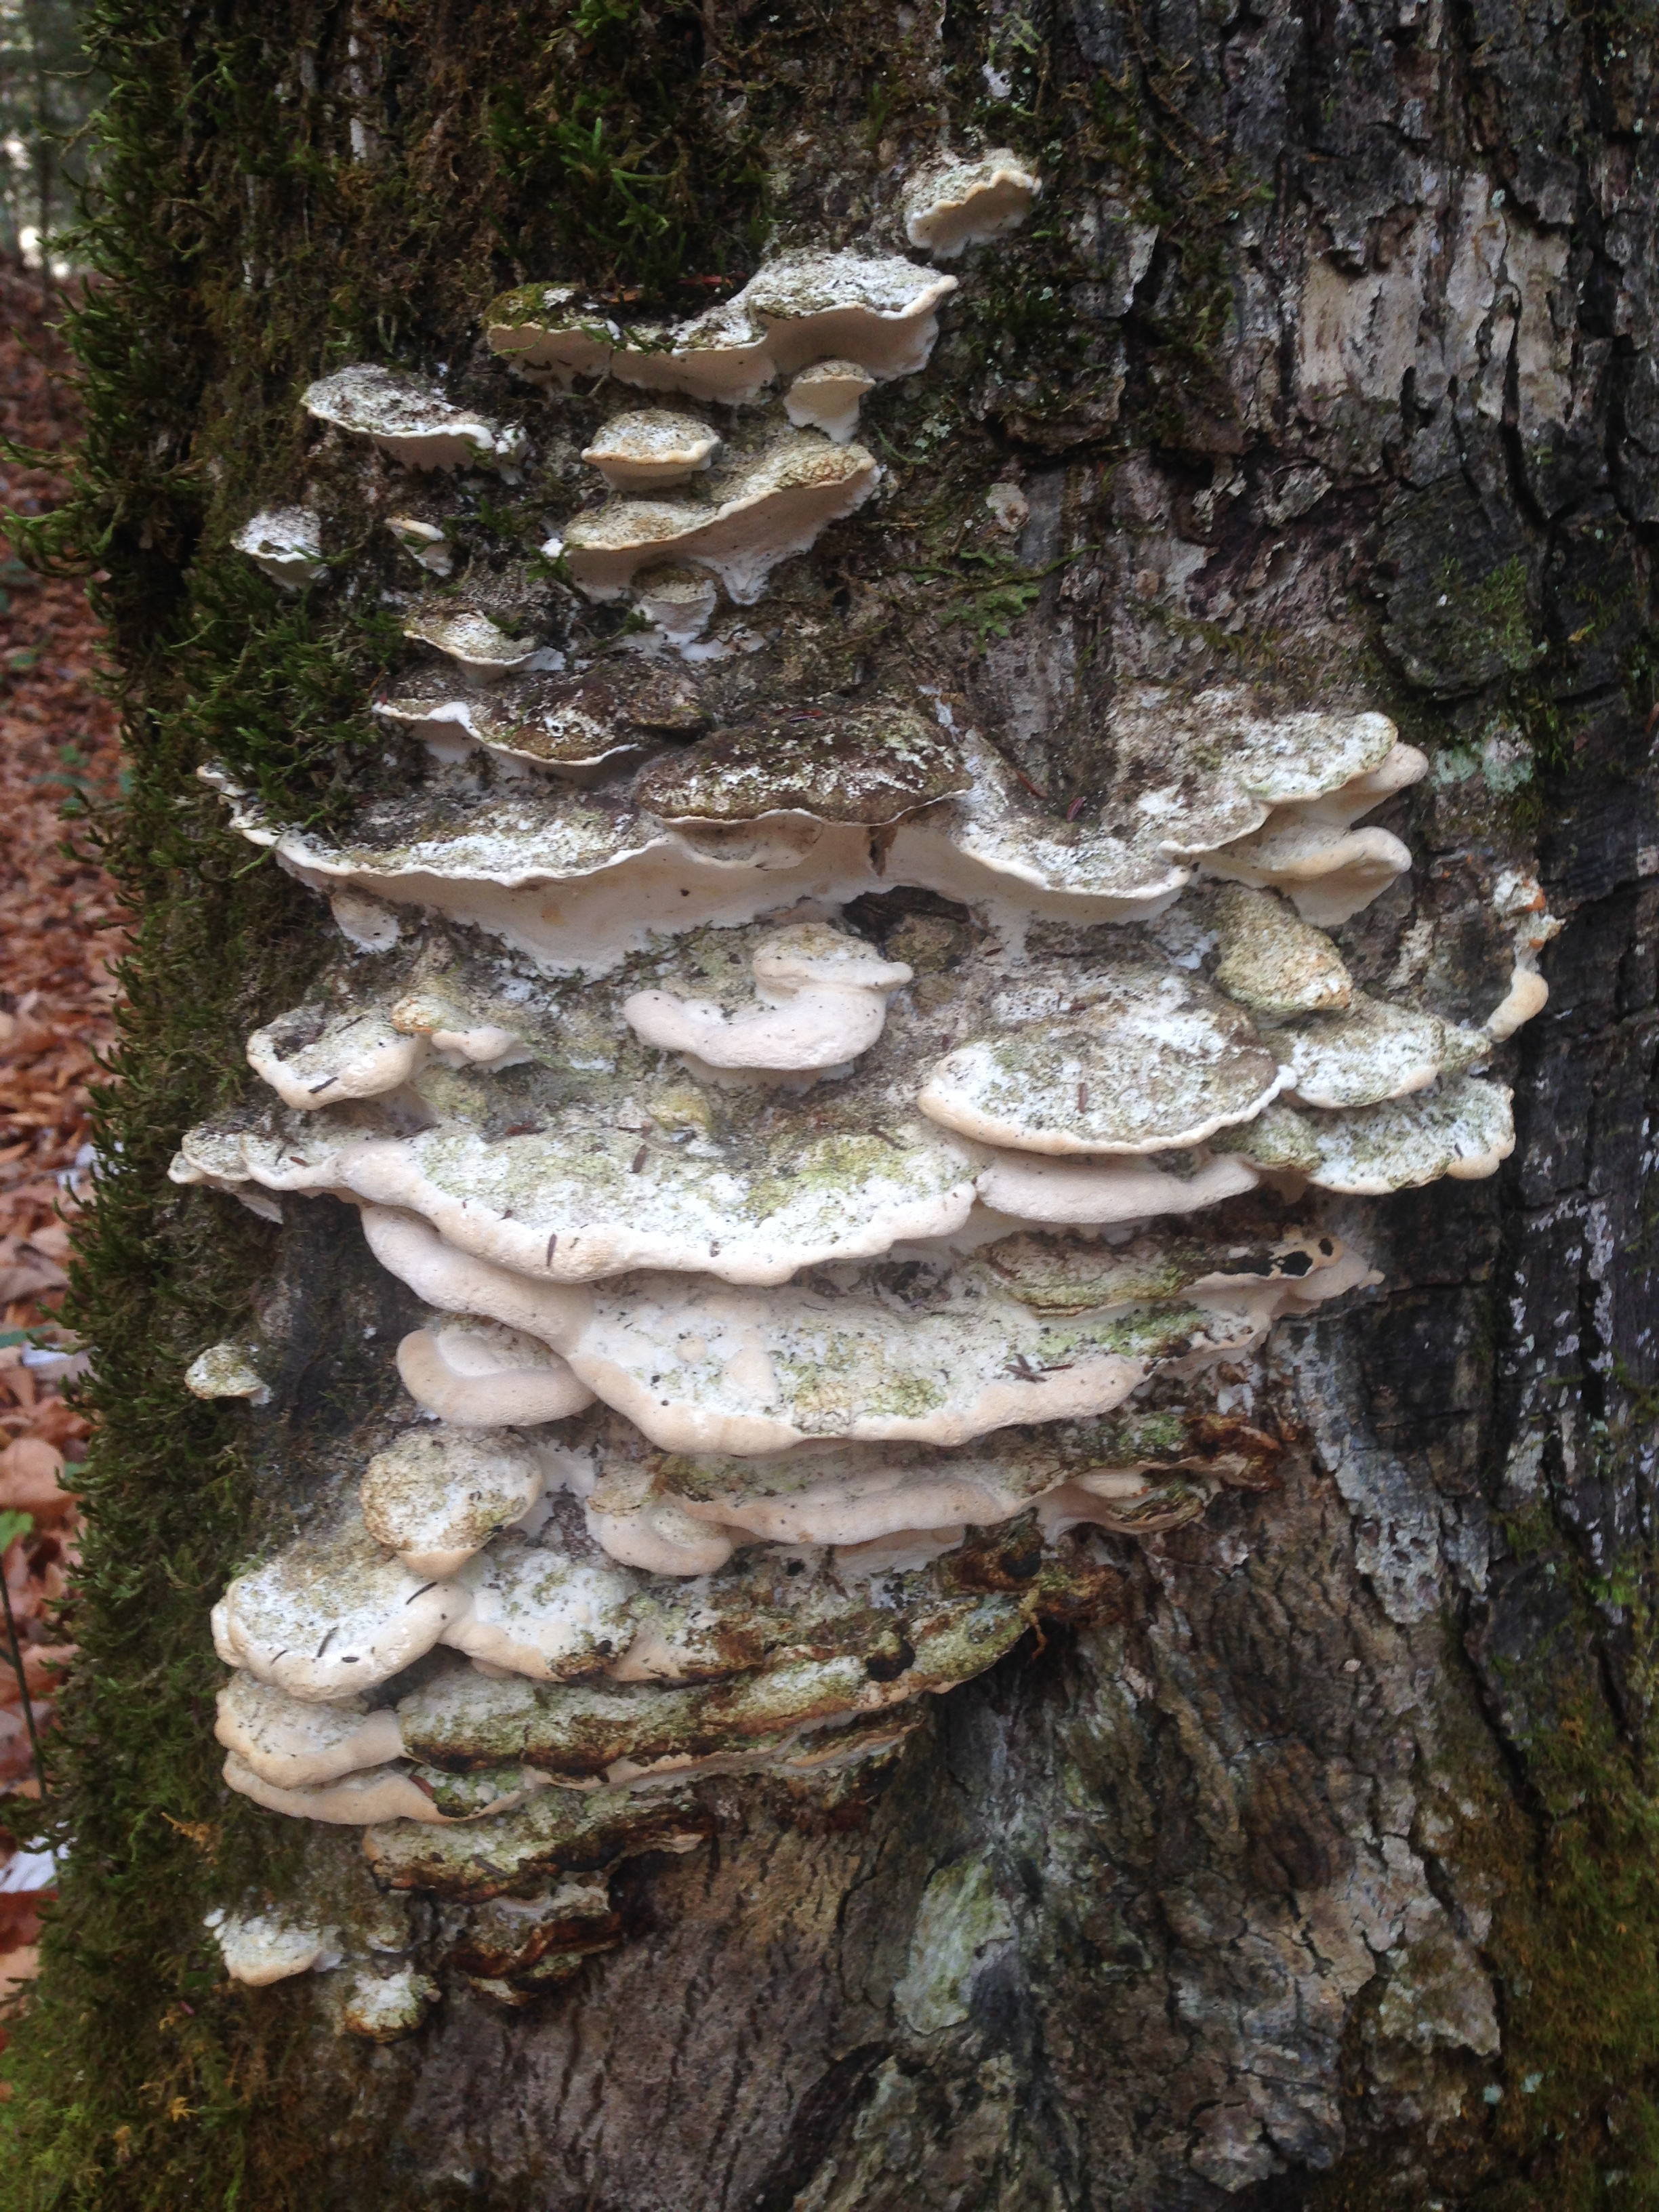 Mushrooms on the side of a tree